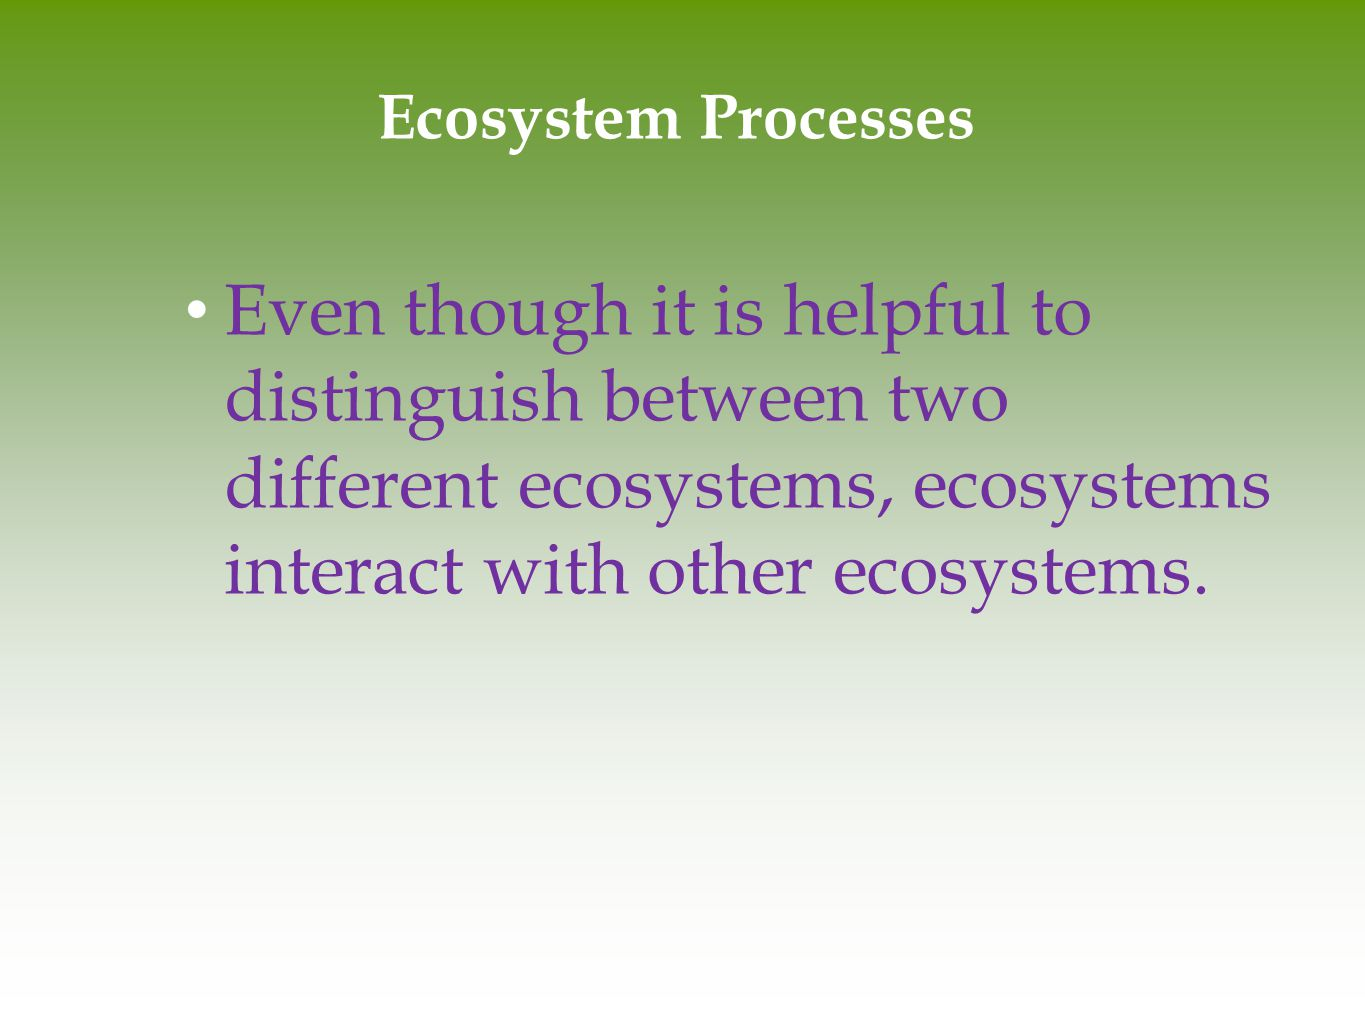 Ecosystem Processes Even though it is helpful to distinguish between two different ecosystems, ecosystems interact with other ecosystems.